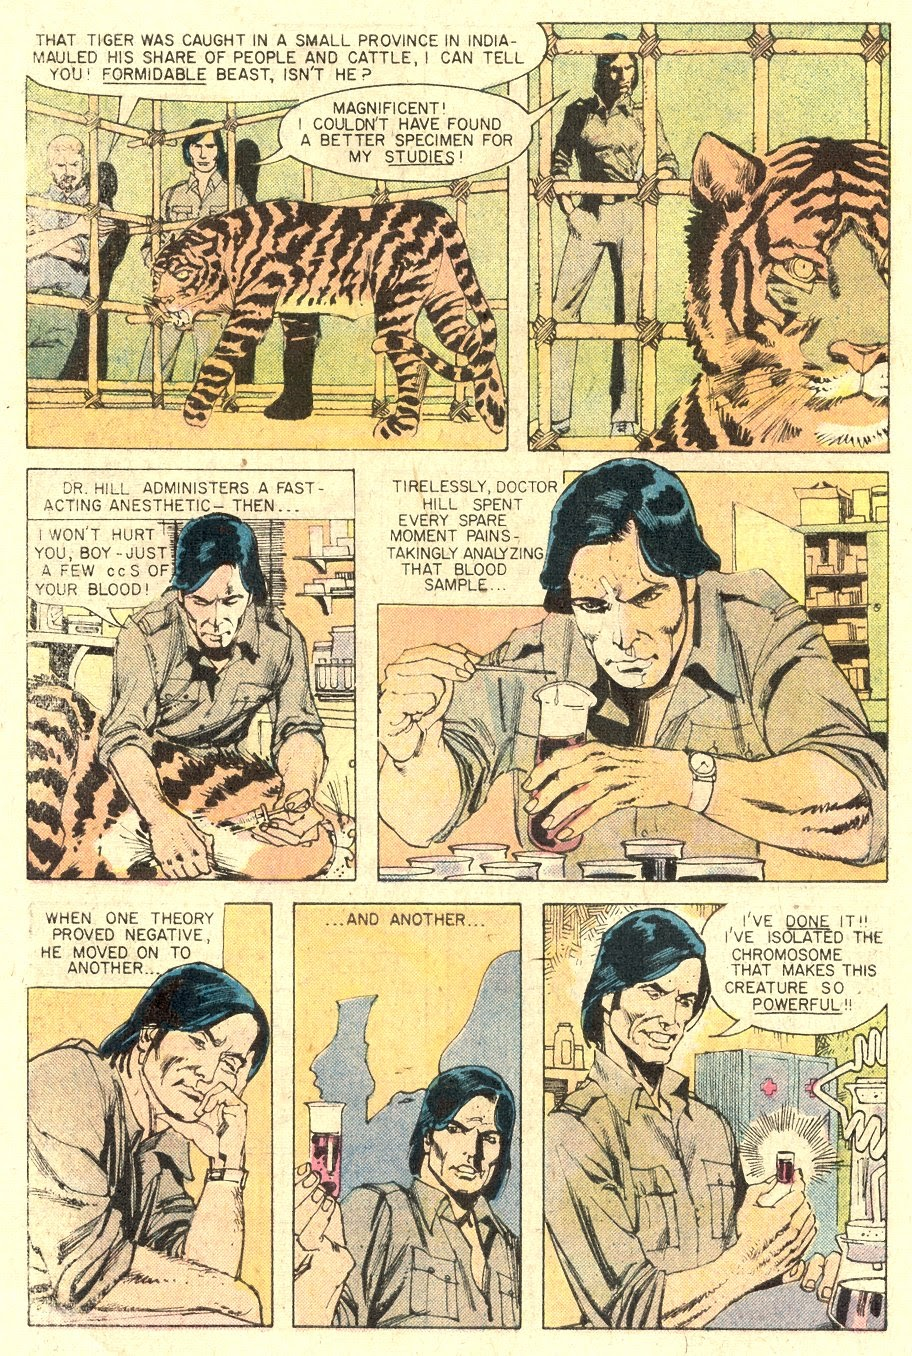 Read online Tiger-Man comic -  Issue #1 - 6